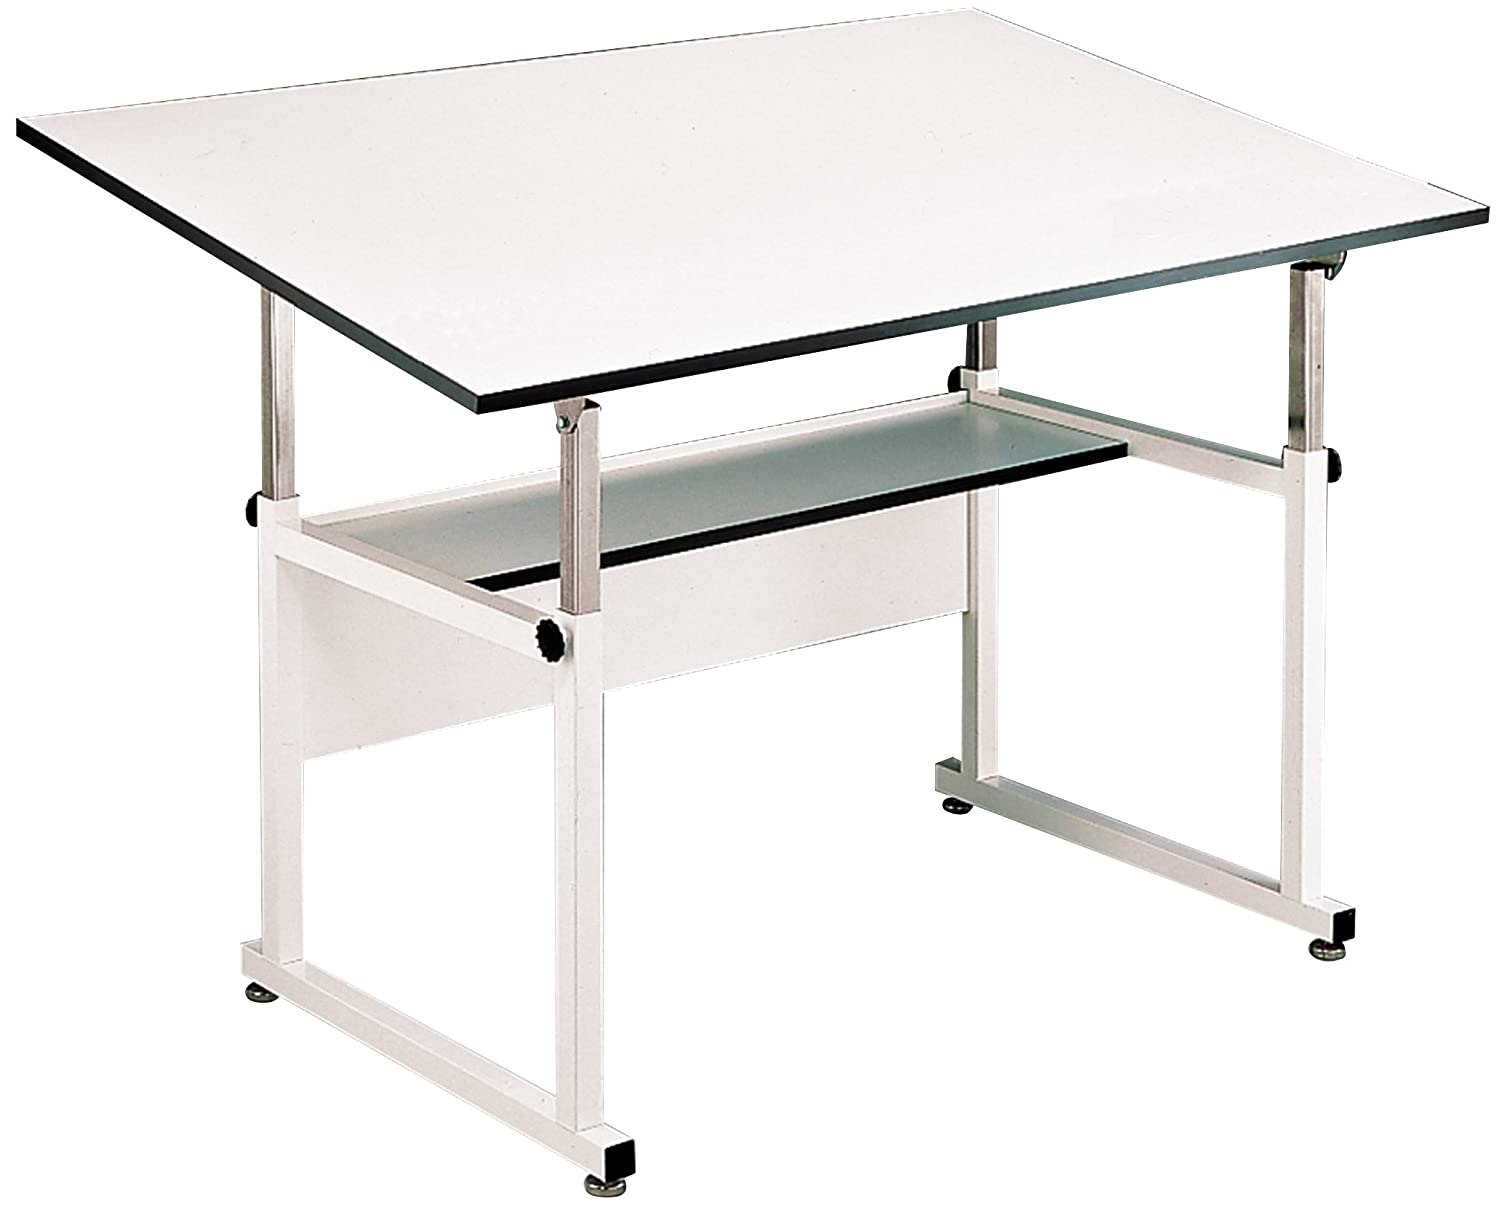 Alvin WM60-4-XB WorkMaster Table - White Base White Top 37 1-2 inches x 60 inches